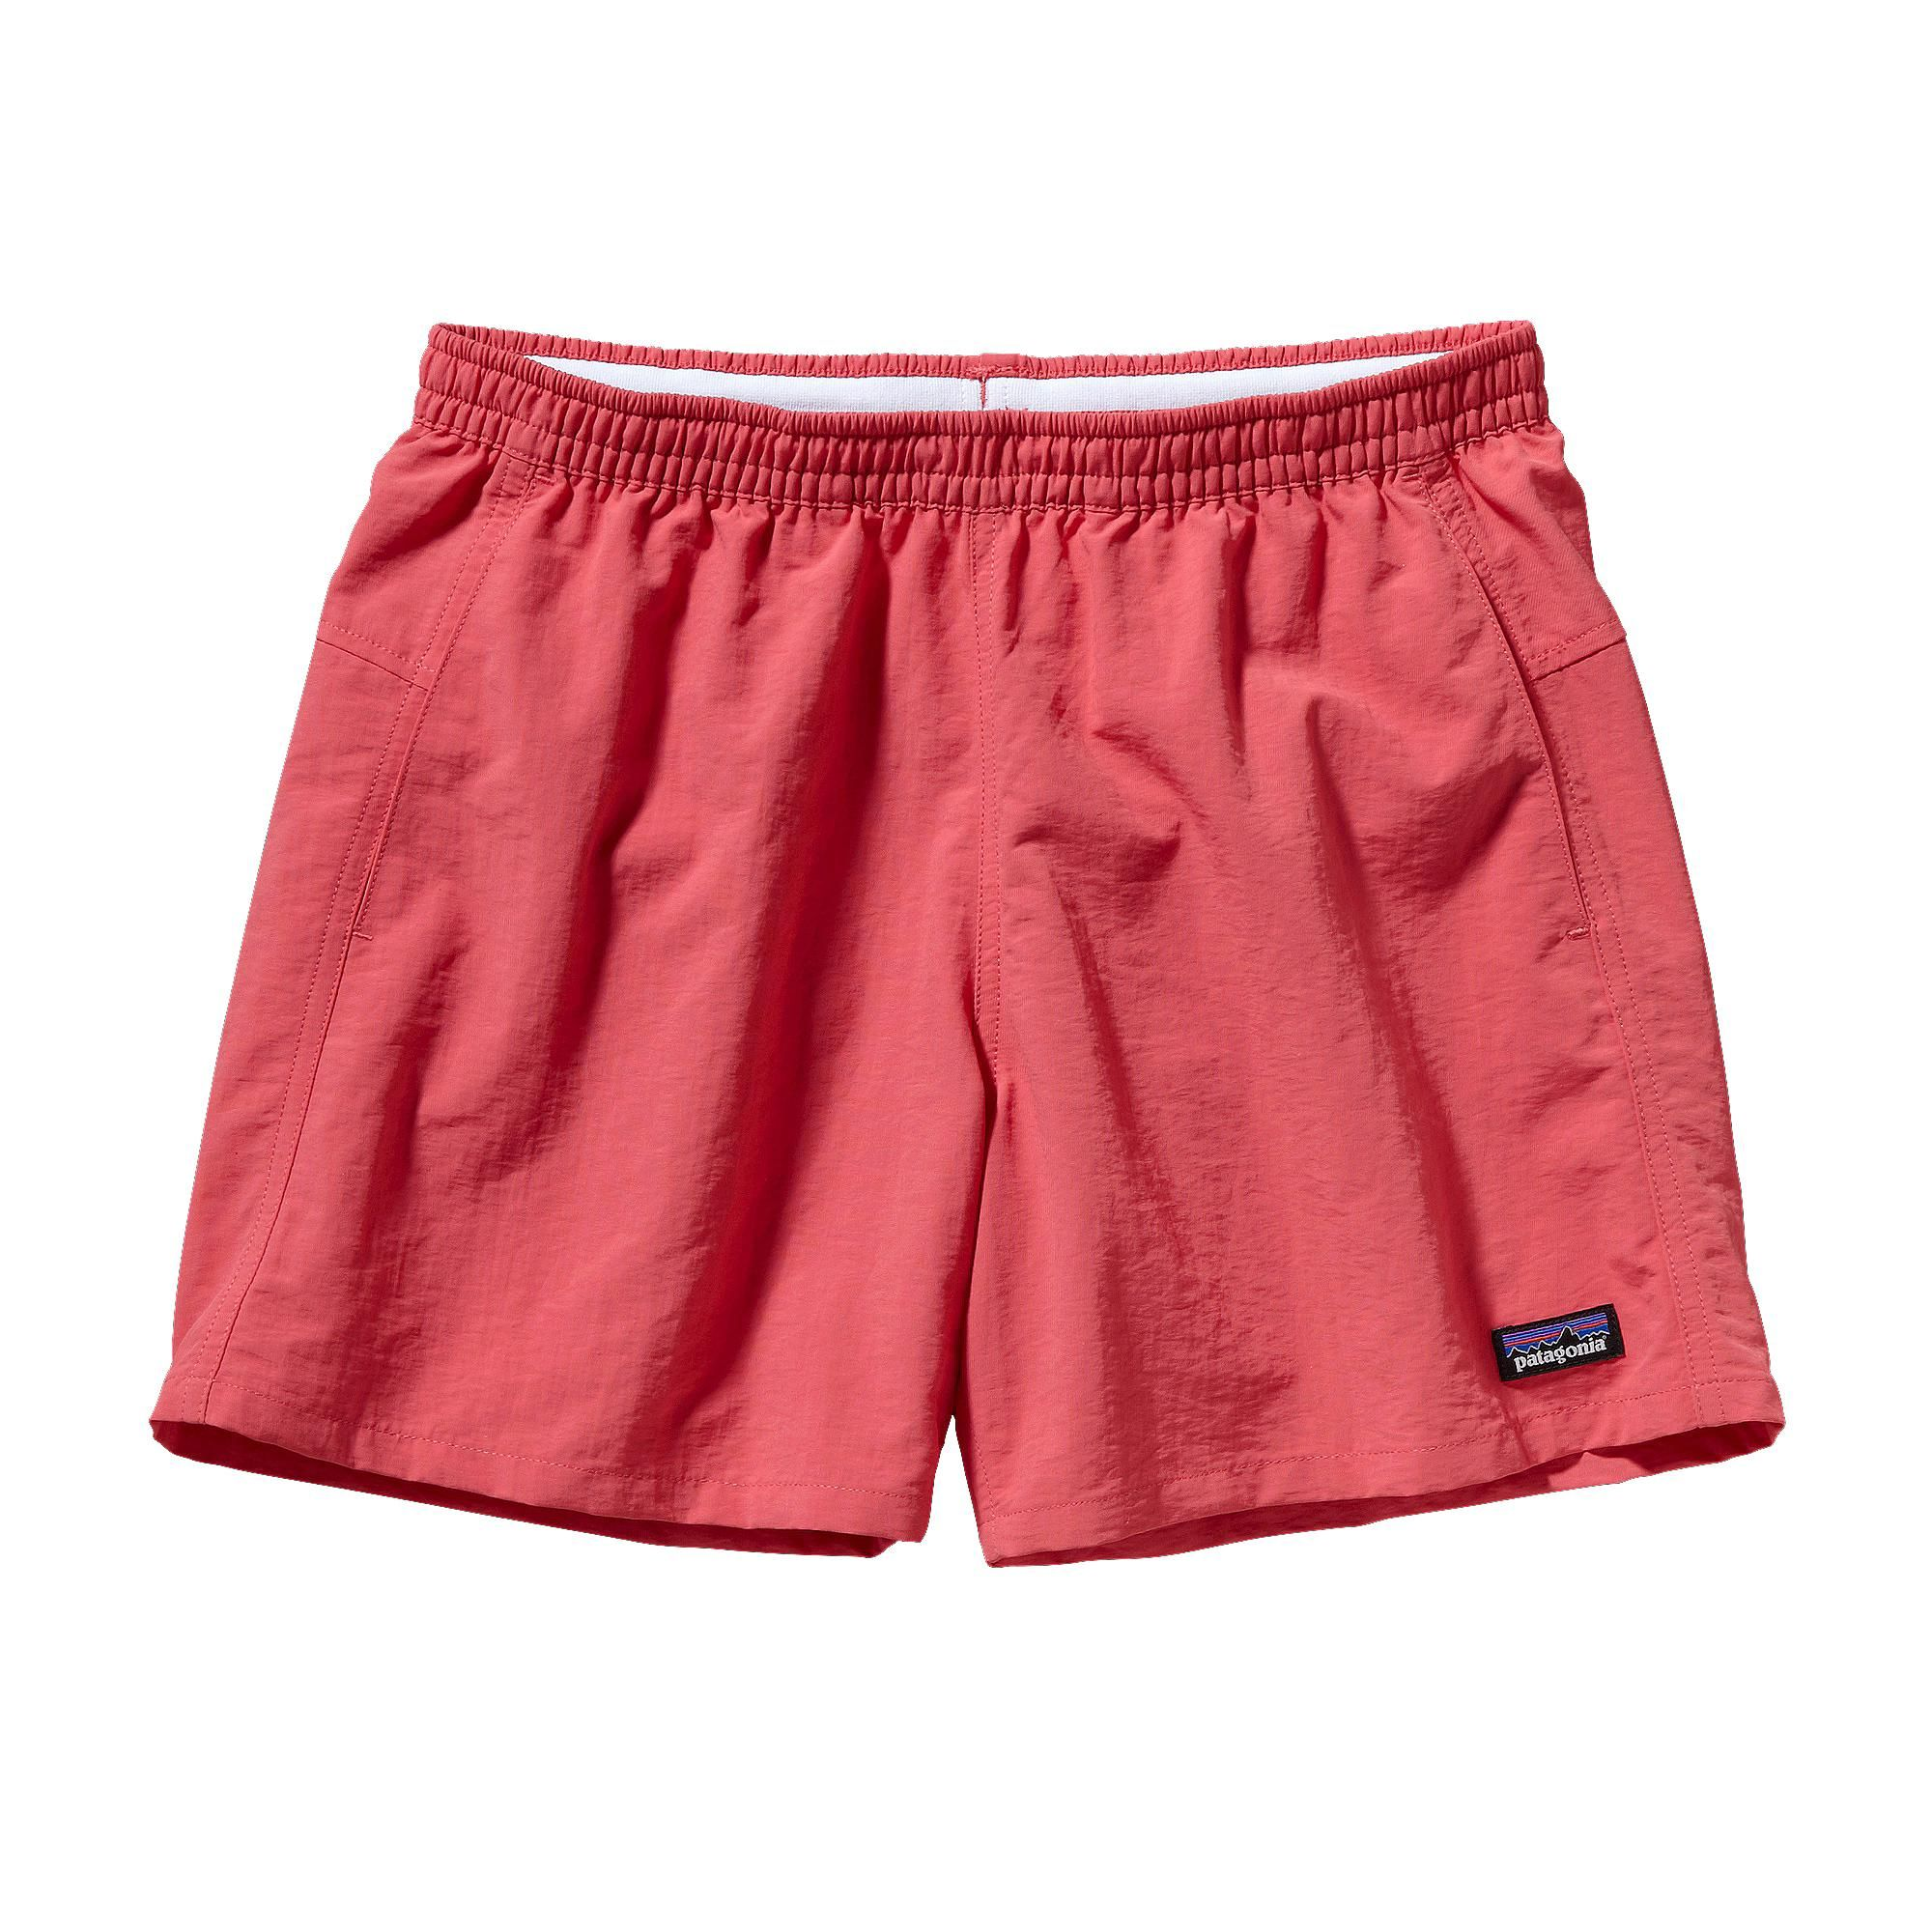 If It S Been Done It S Been Done In Baggies The Patagonia Women S Baggies Shorts 5 Are The Original Funhog All Dependa With Images Clothes Patagonia Womens Fashion